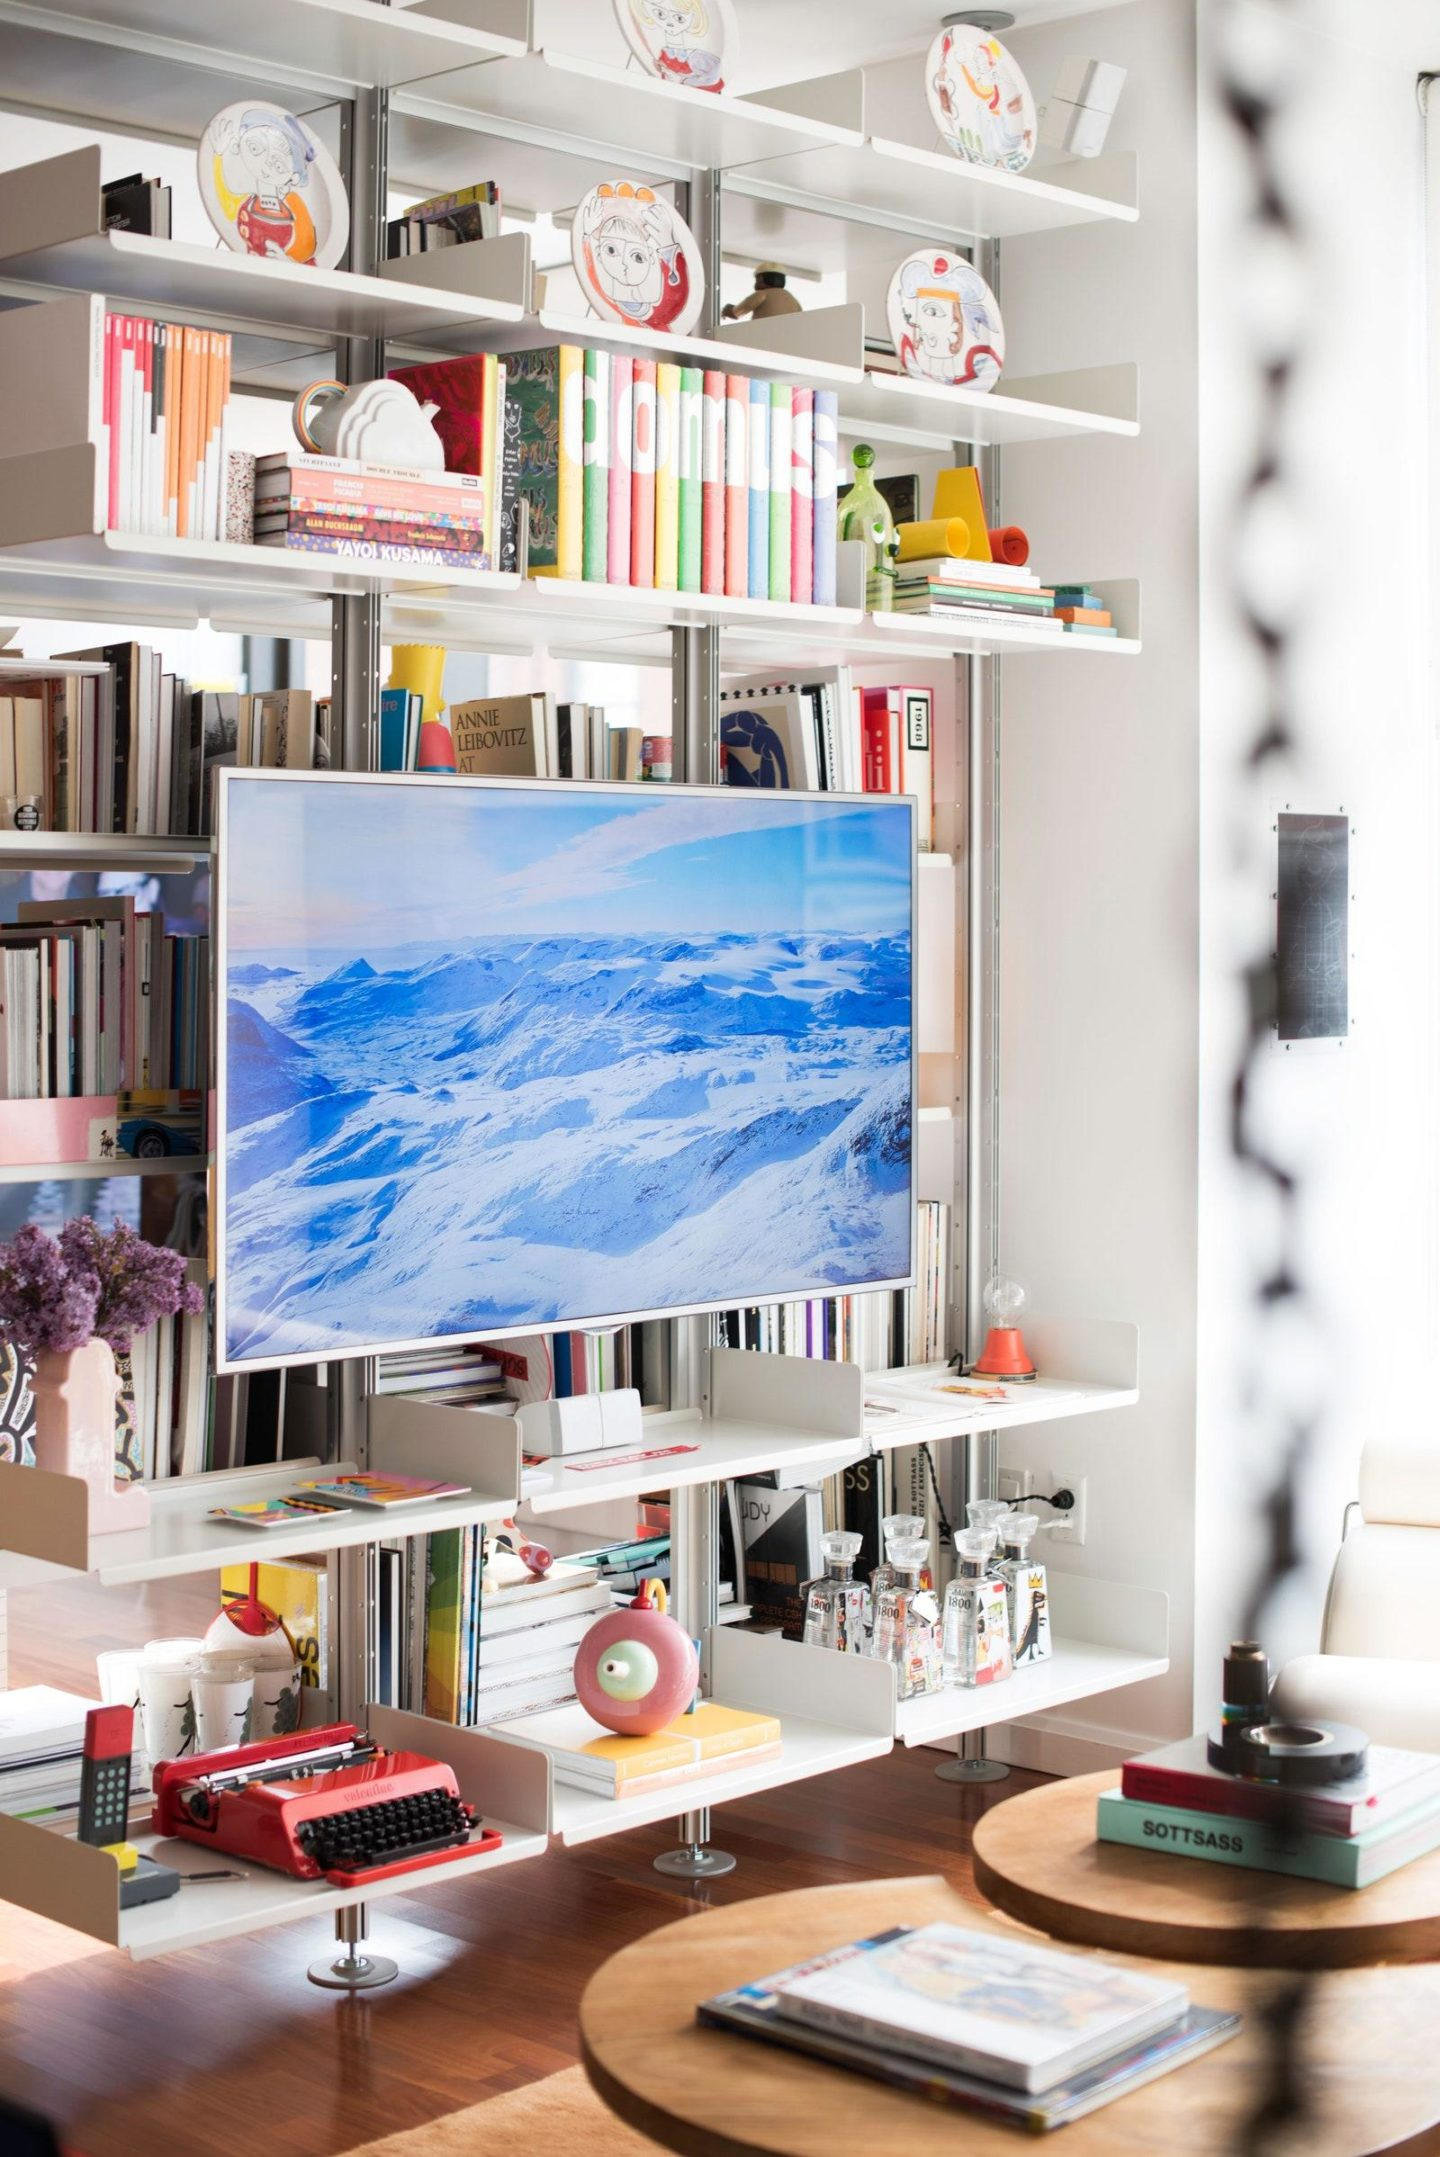 Pinterest Inspiration-The Frame Samsung TV in living room